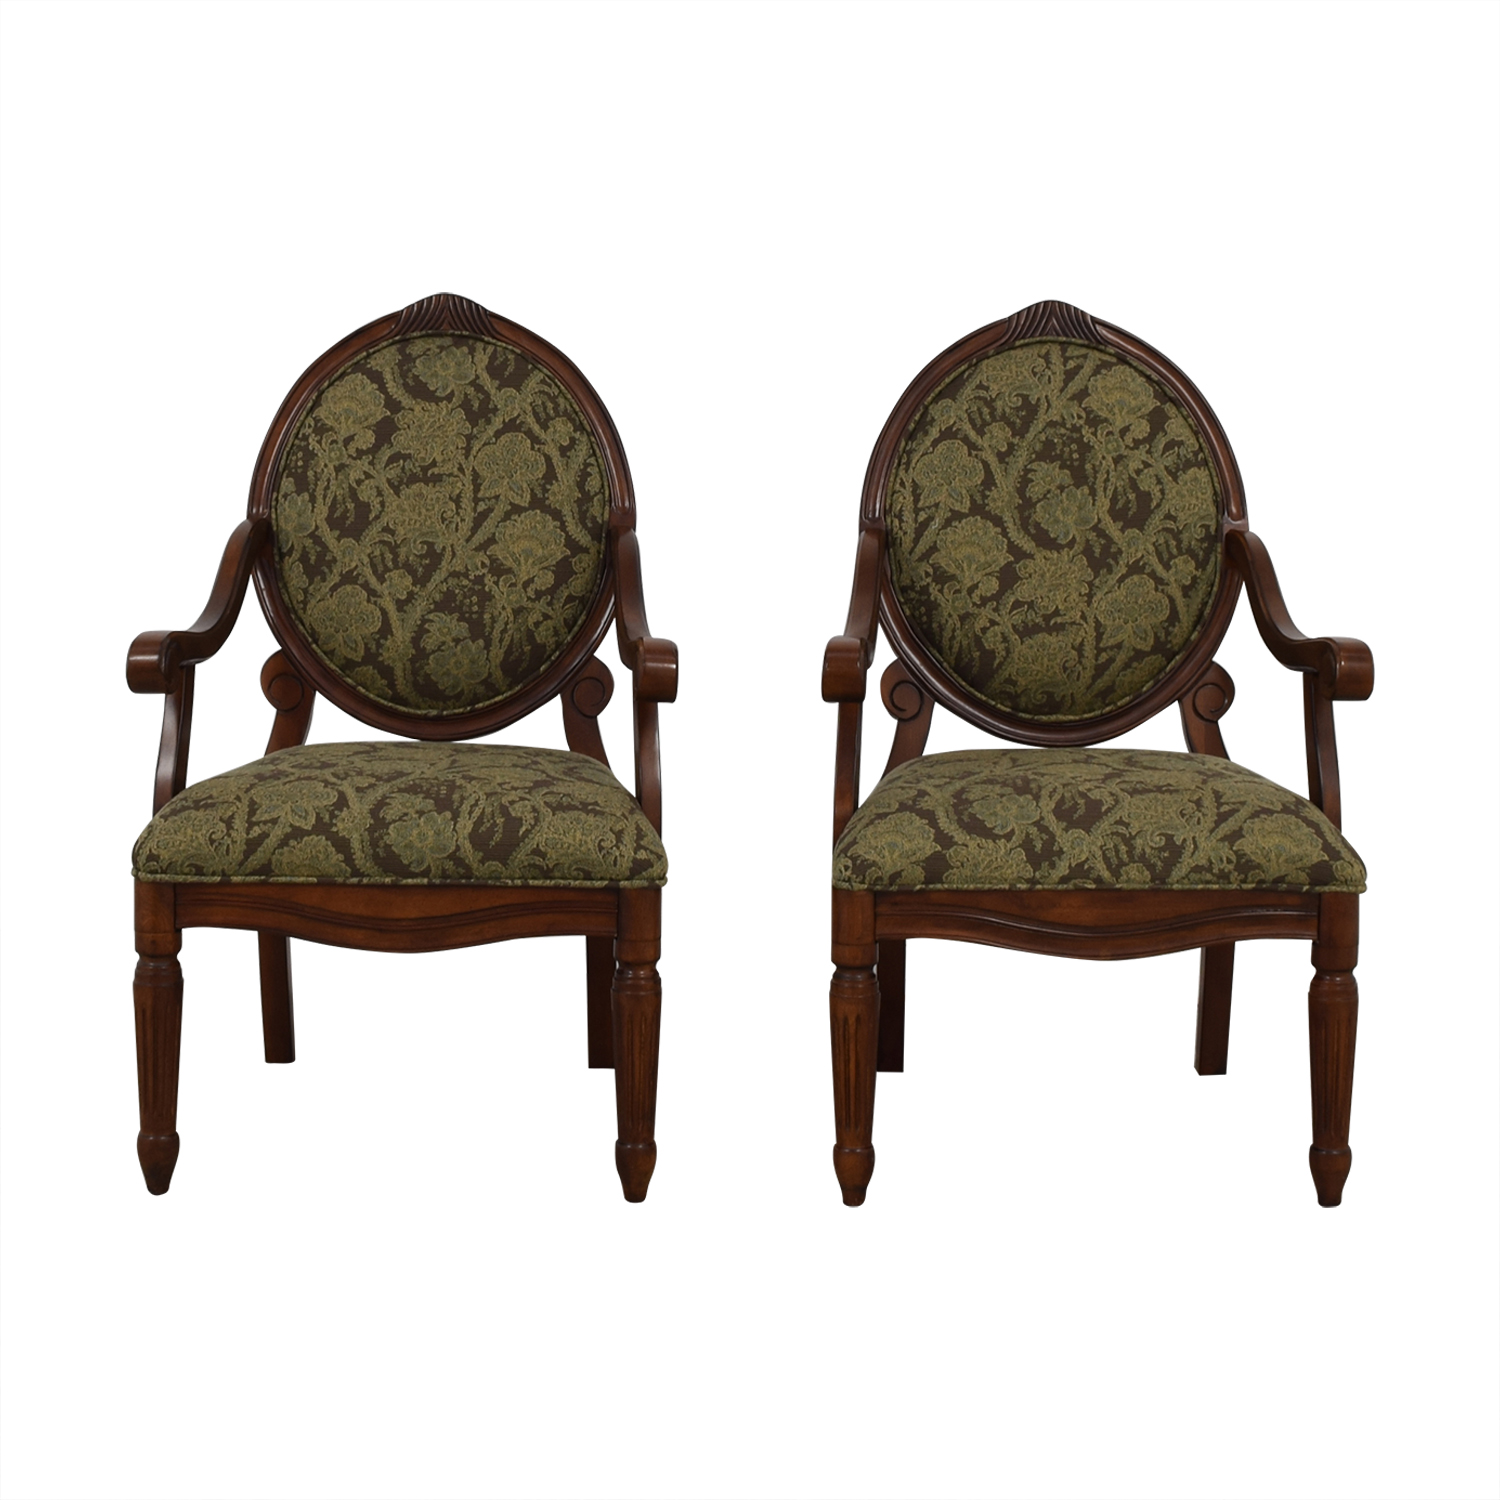 E & E Co E & E Co Floral Upholstered Wood Chairs nyc